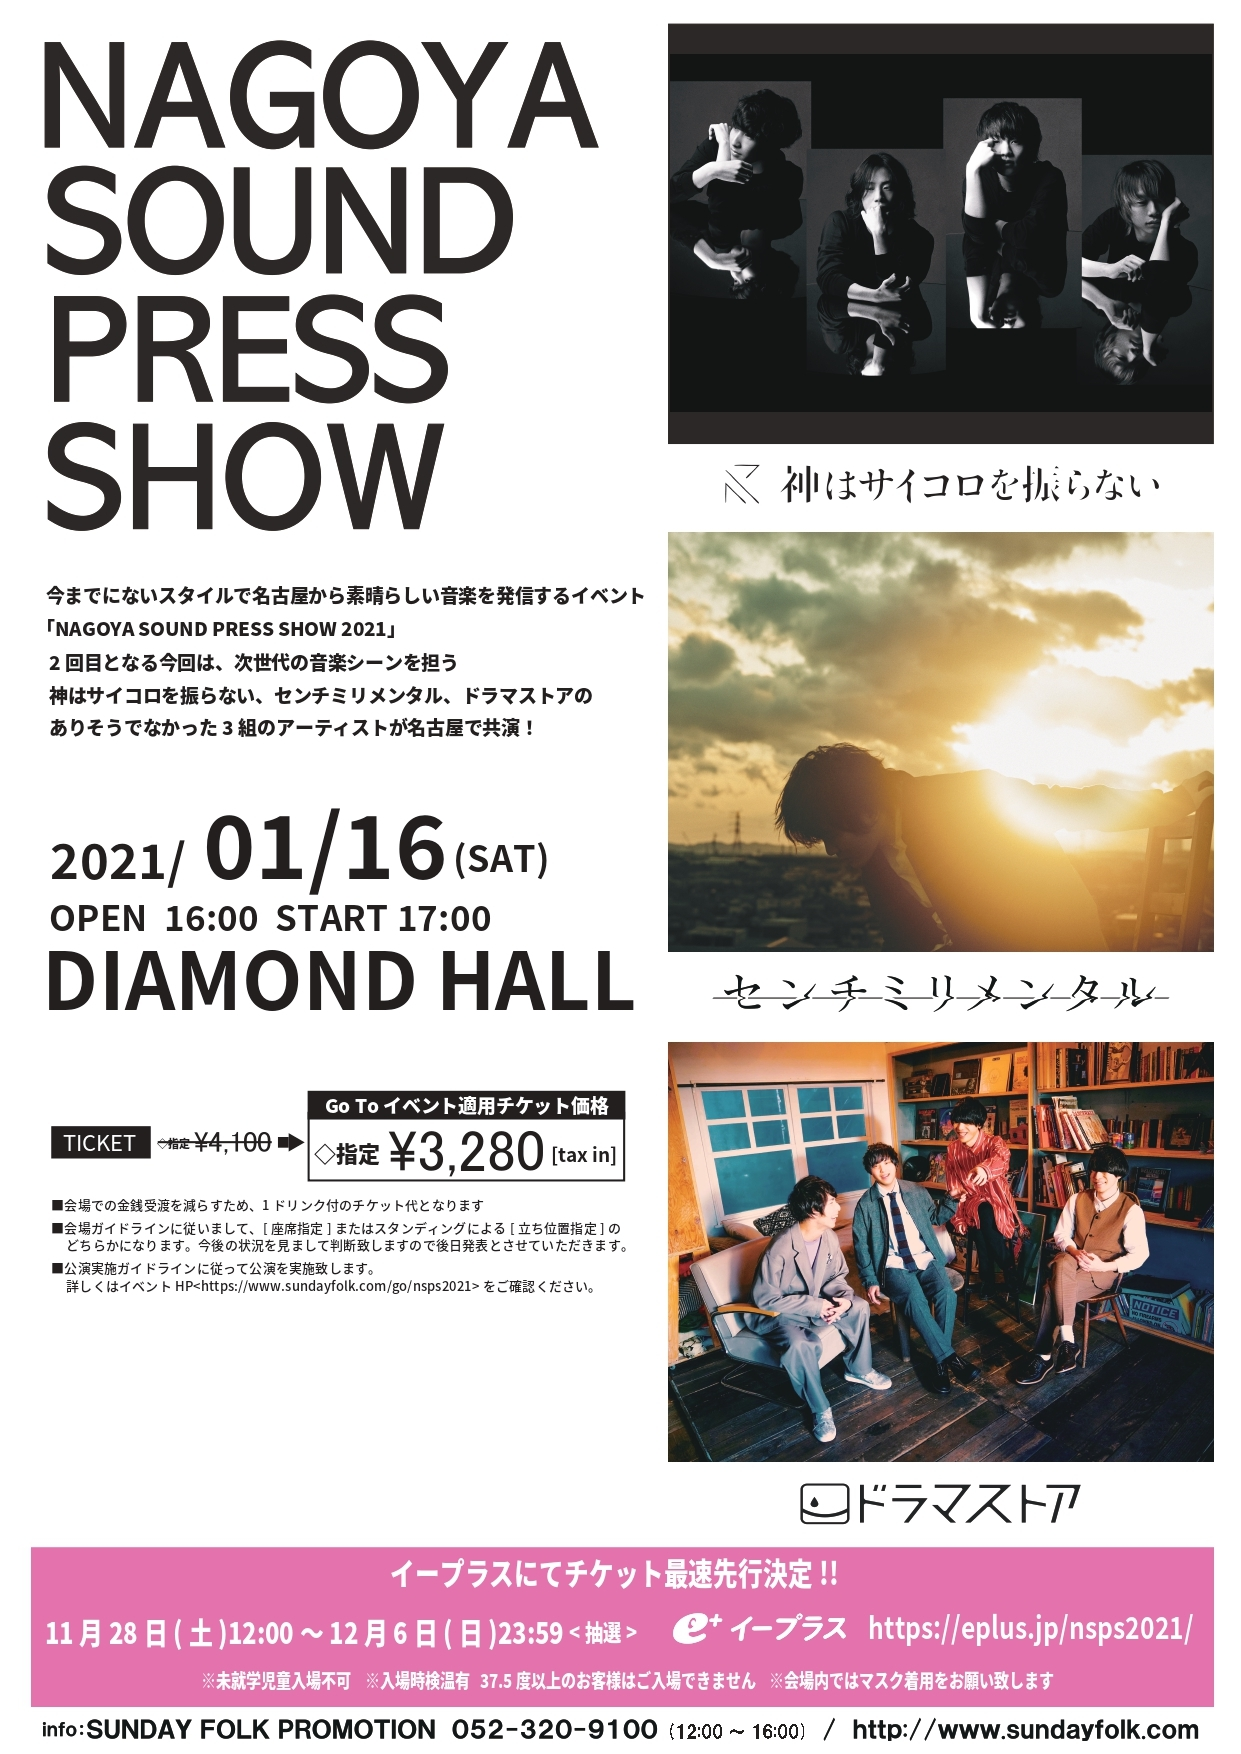 『NAGOYA SOUND PRESS SHOW 2021』